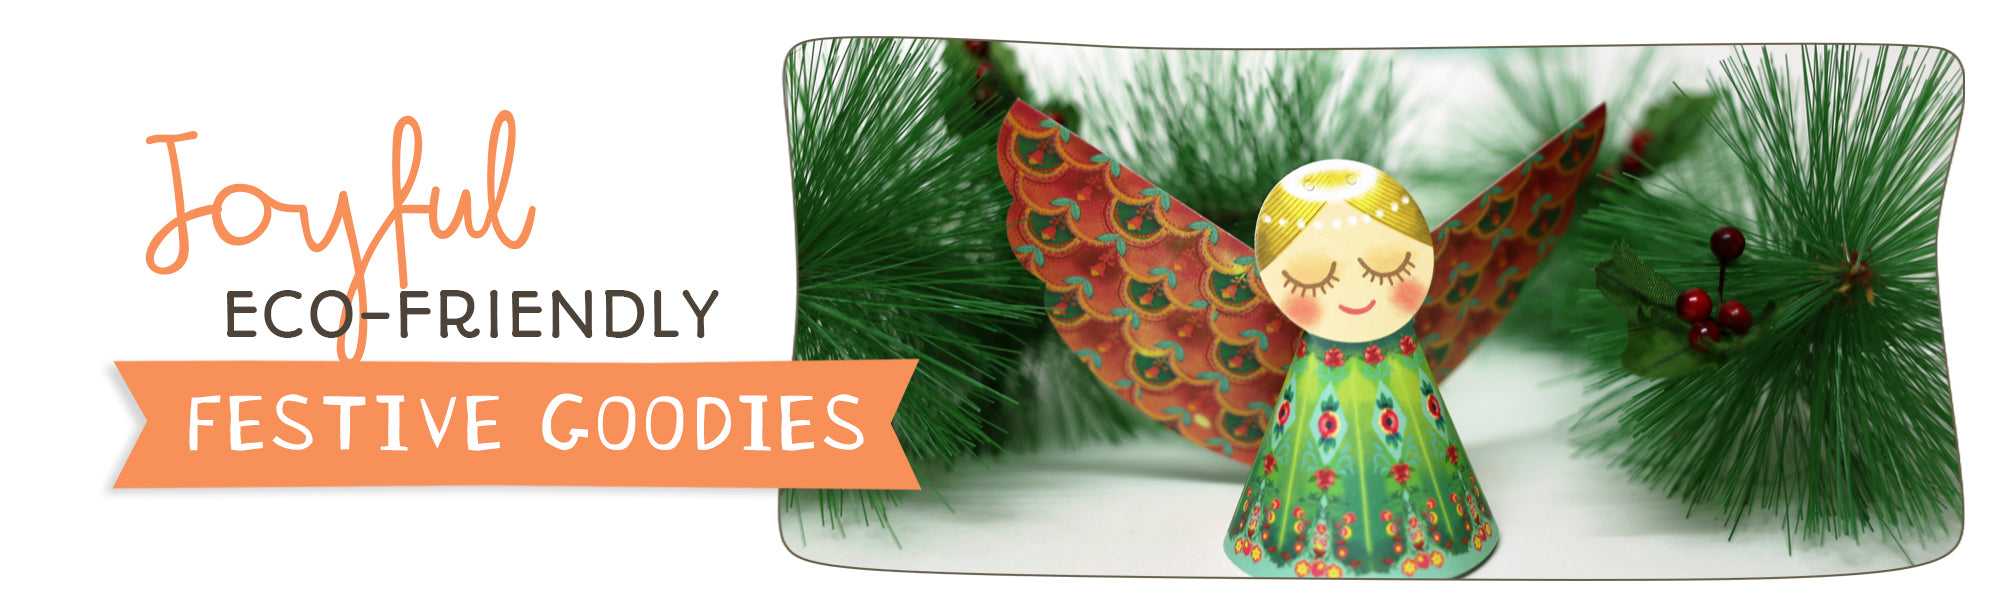 Joyful eco-friendly christmas decor and gift boxes